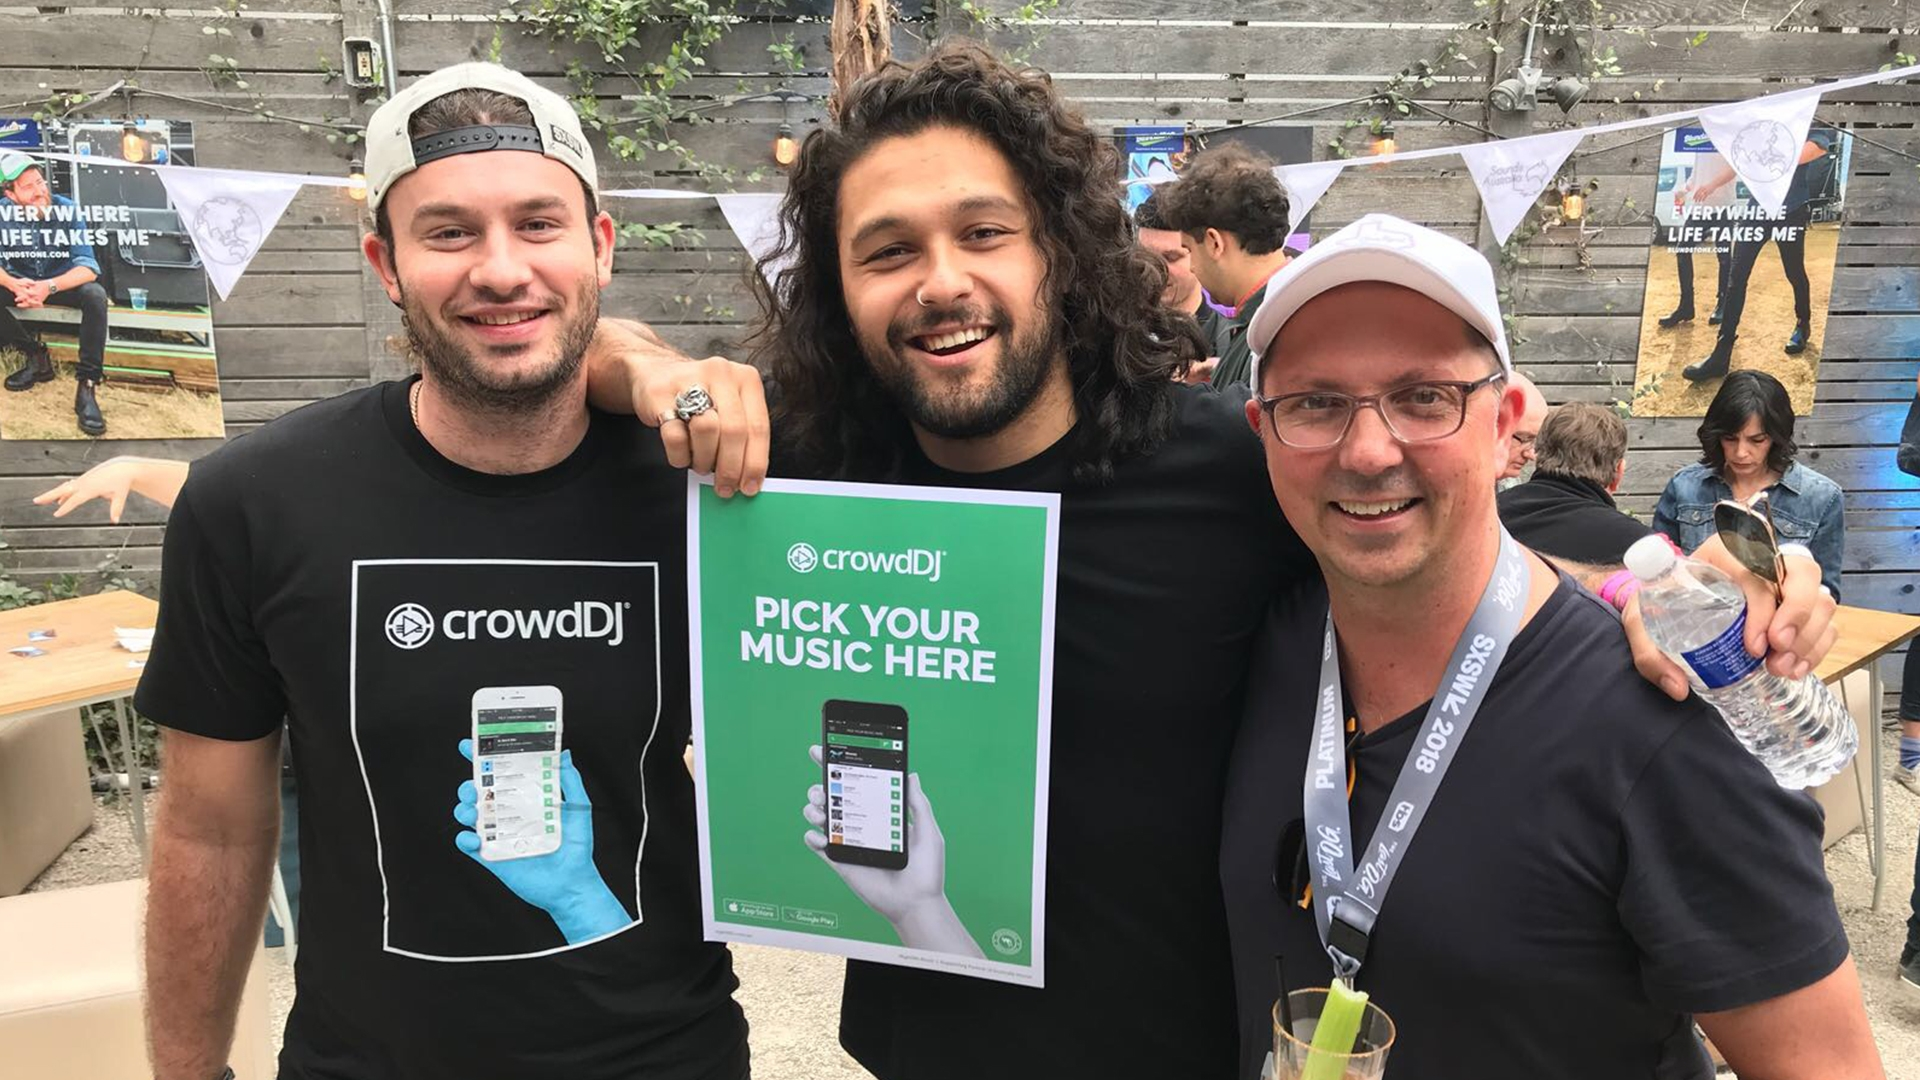 Nightlife Music in the 'house' for SXSW 2019